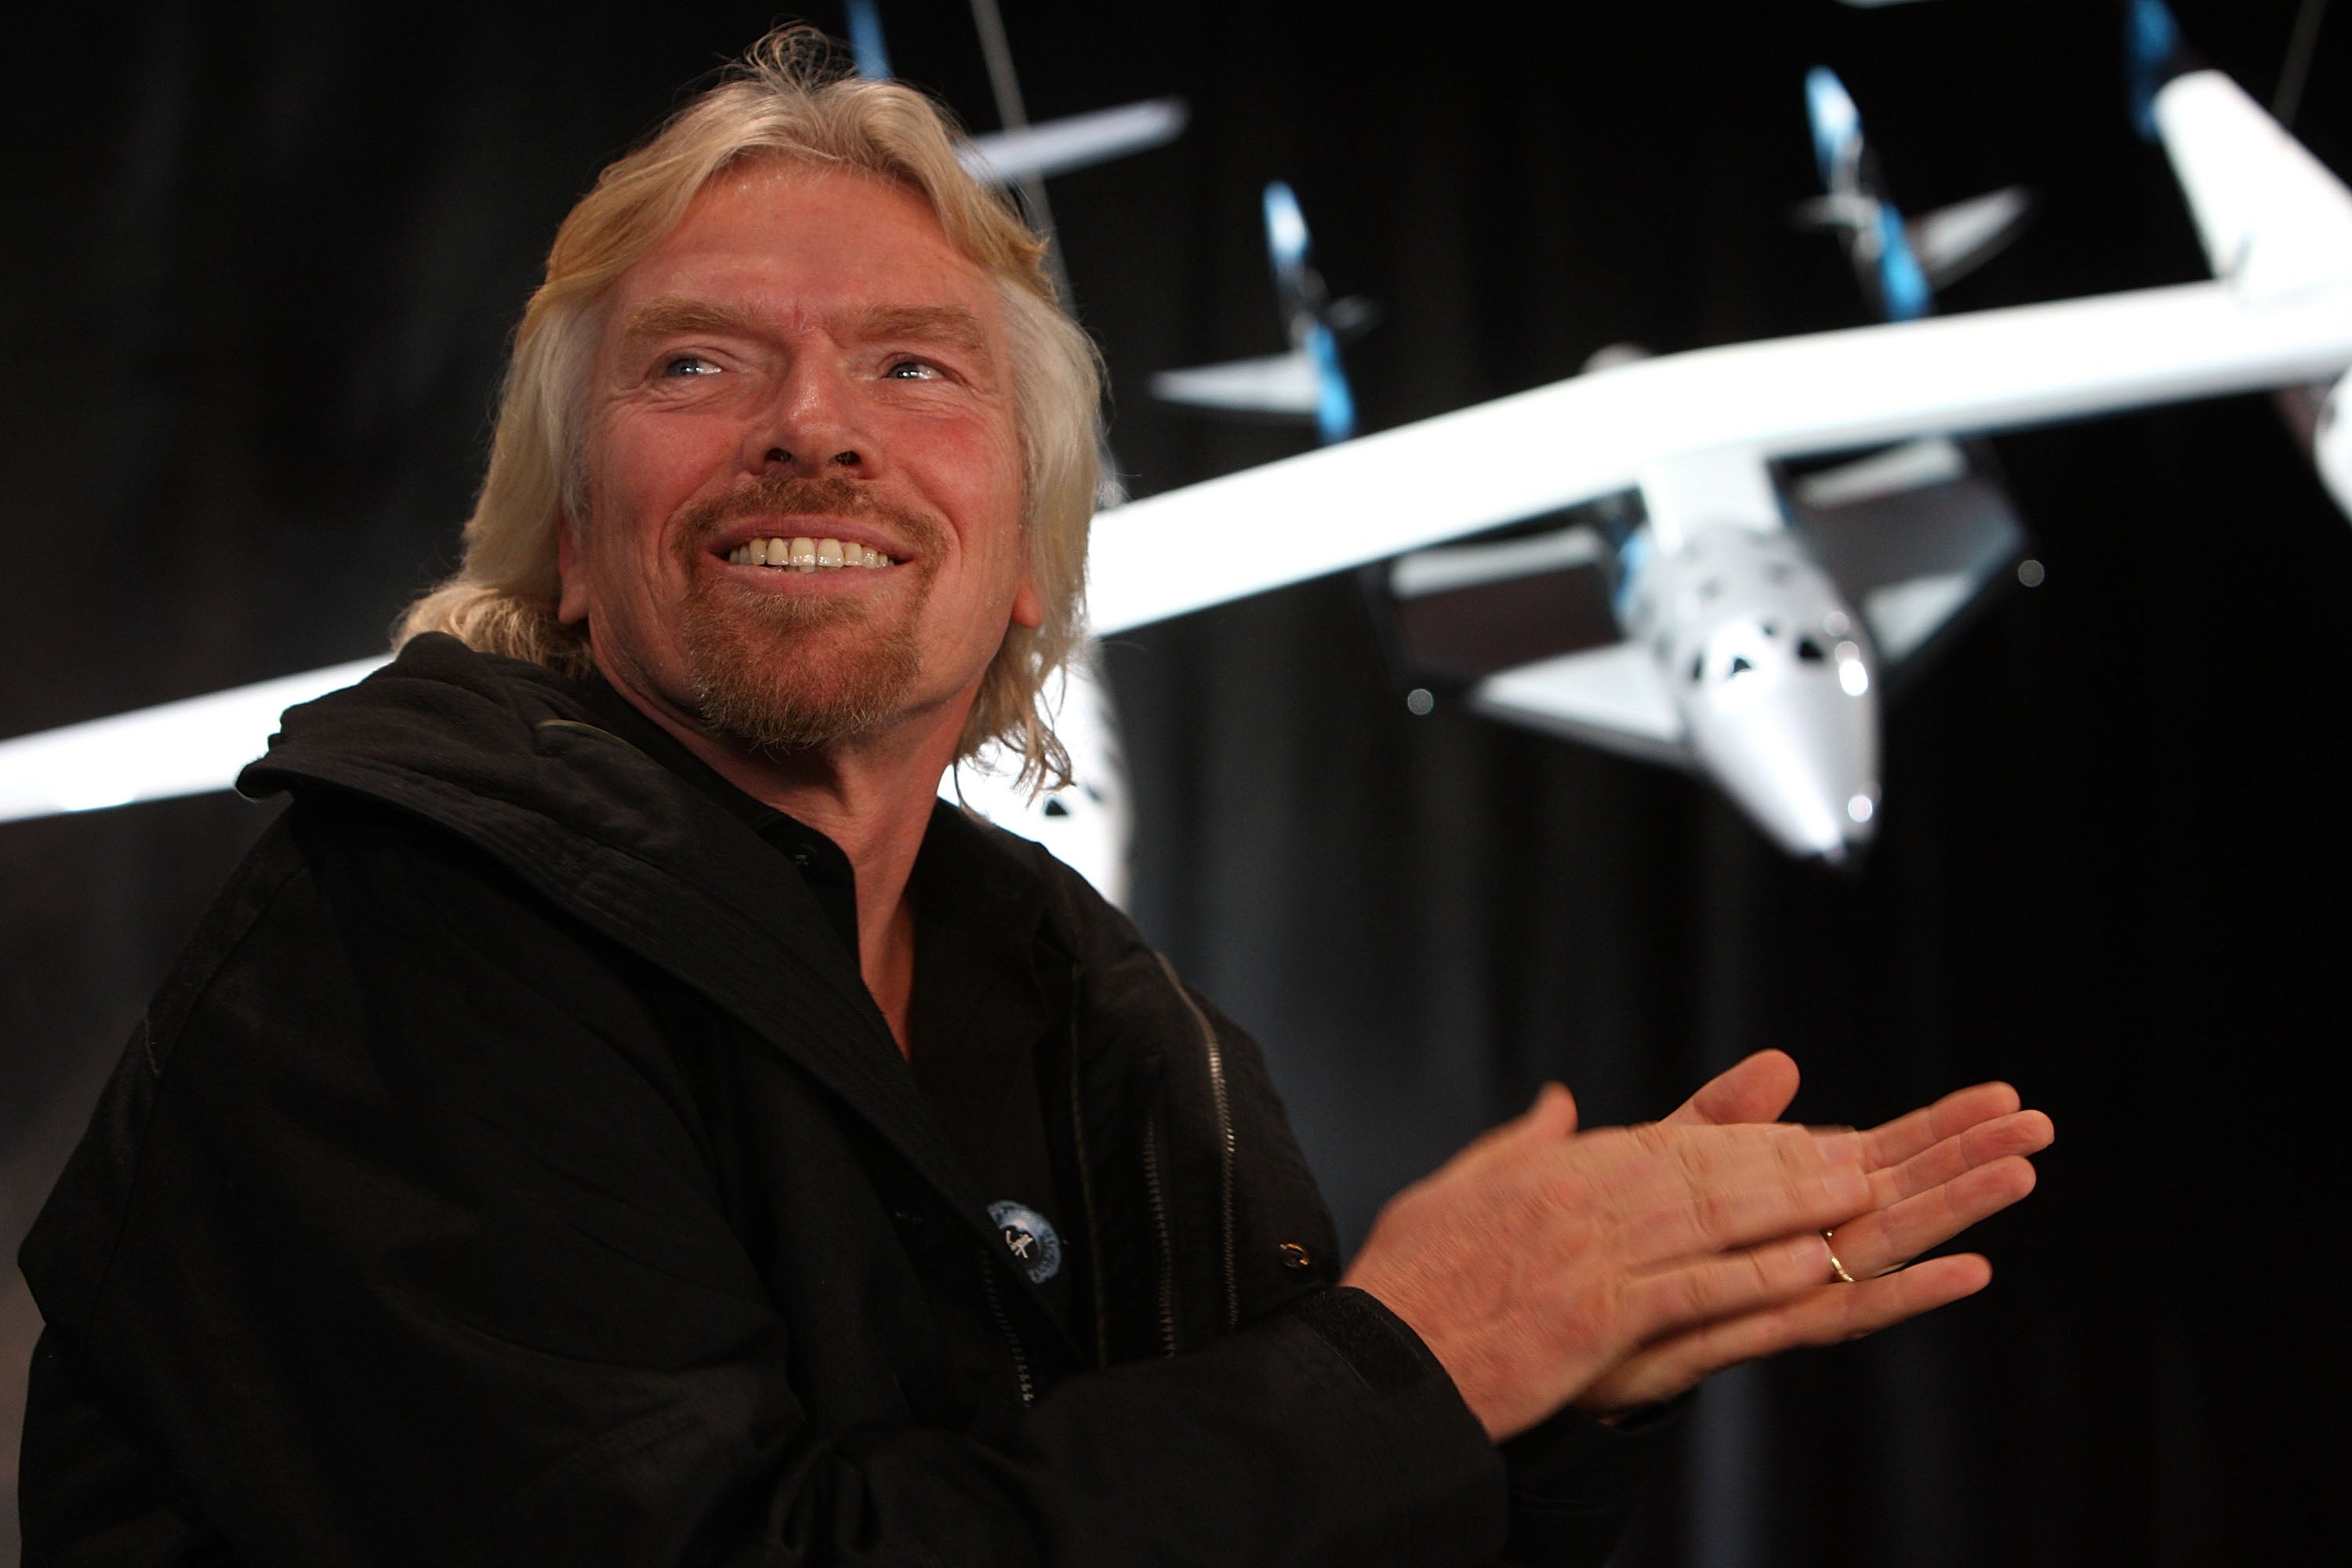 Richard Branson Creates New Space Venture To Launch US Government And Military Spacecrafts